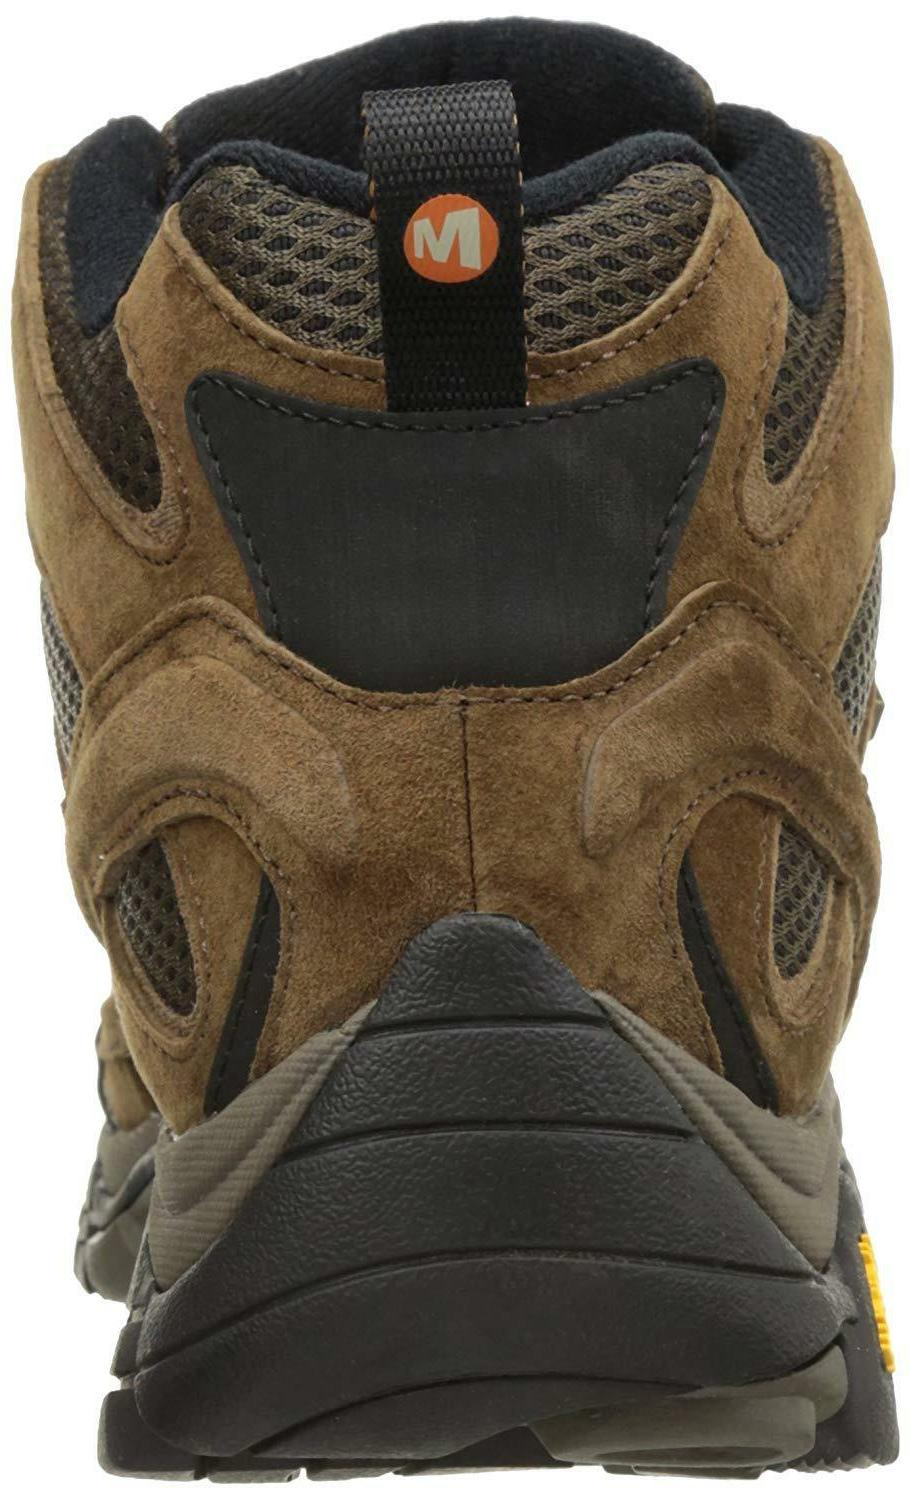 Merrell Moab 2 Mid Waterproof Boot